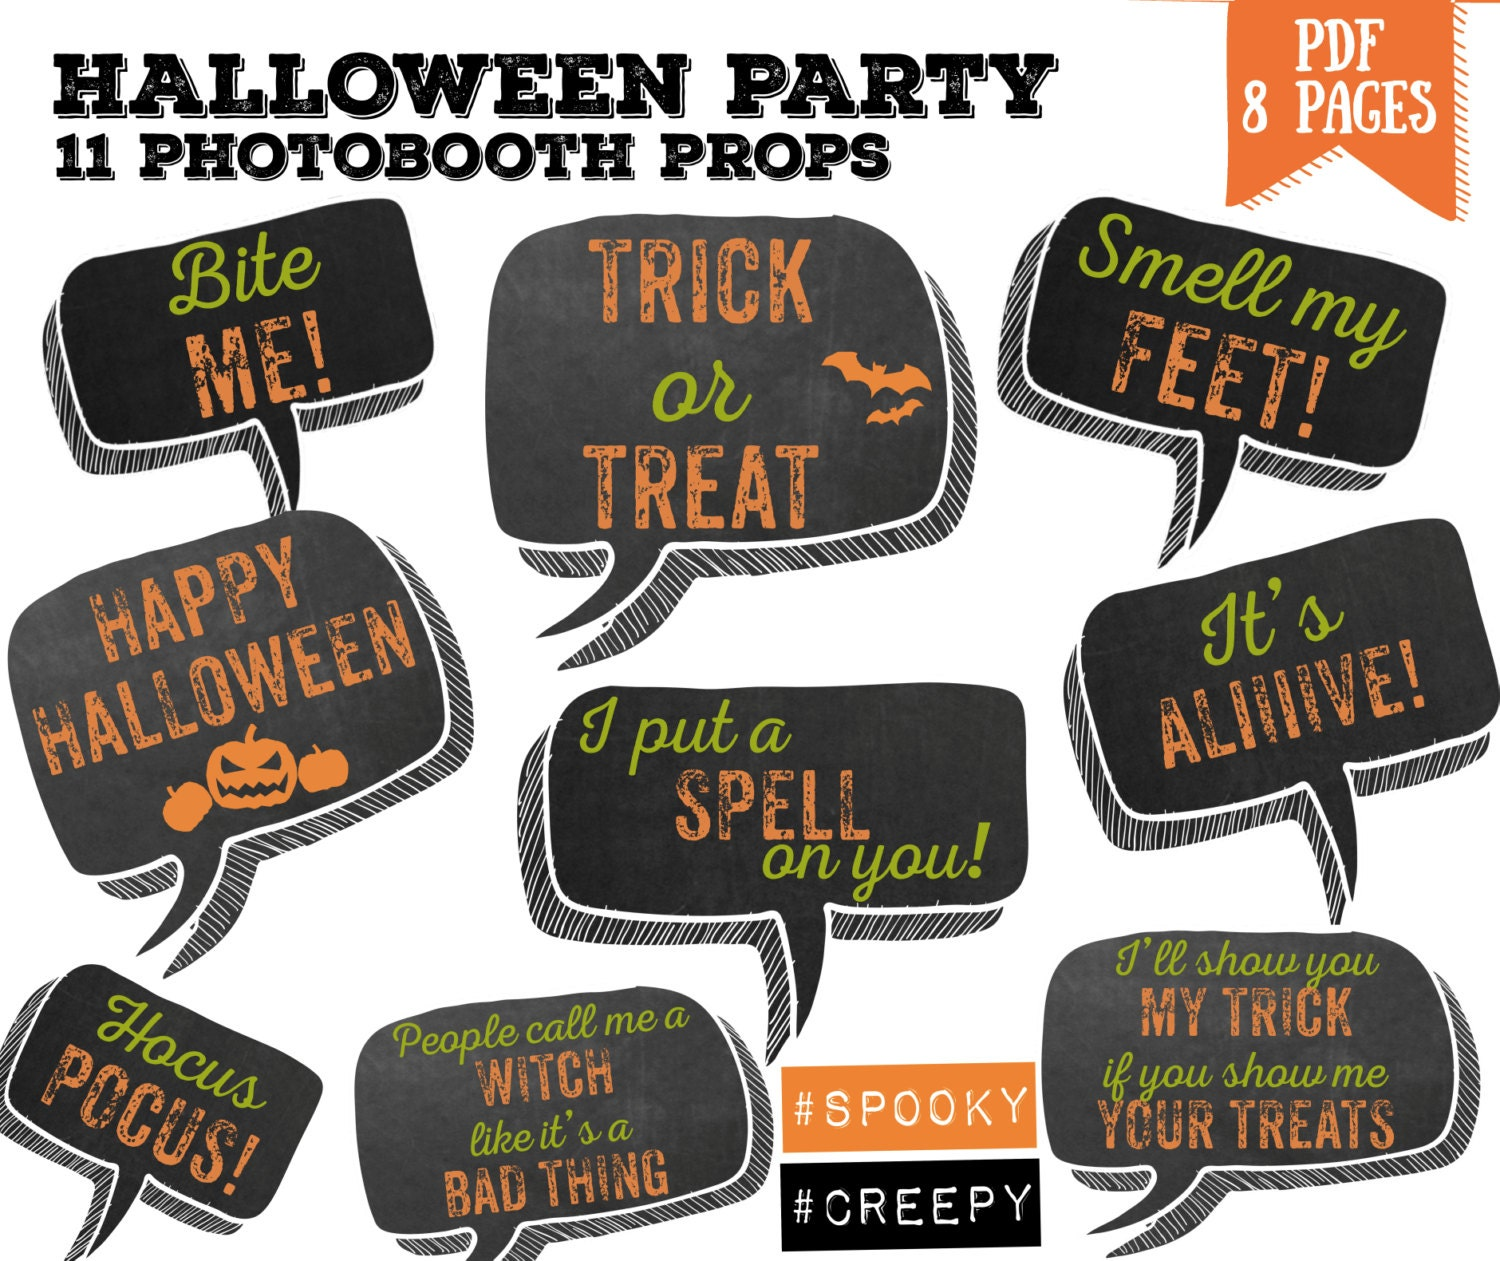 Halloween bubble speech party Photo booth props set